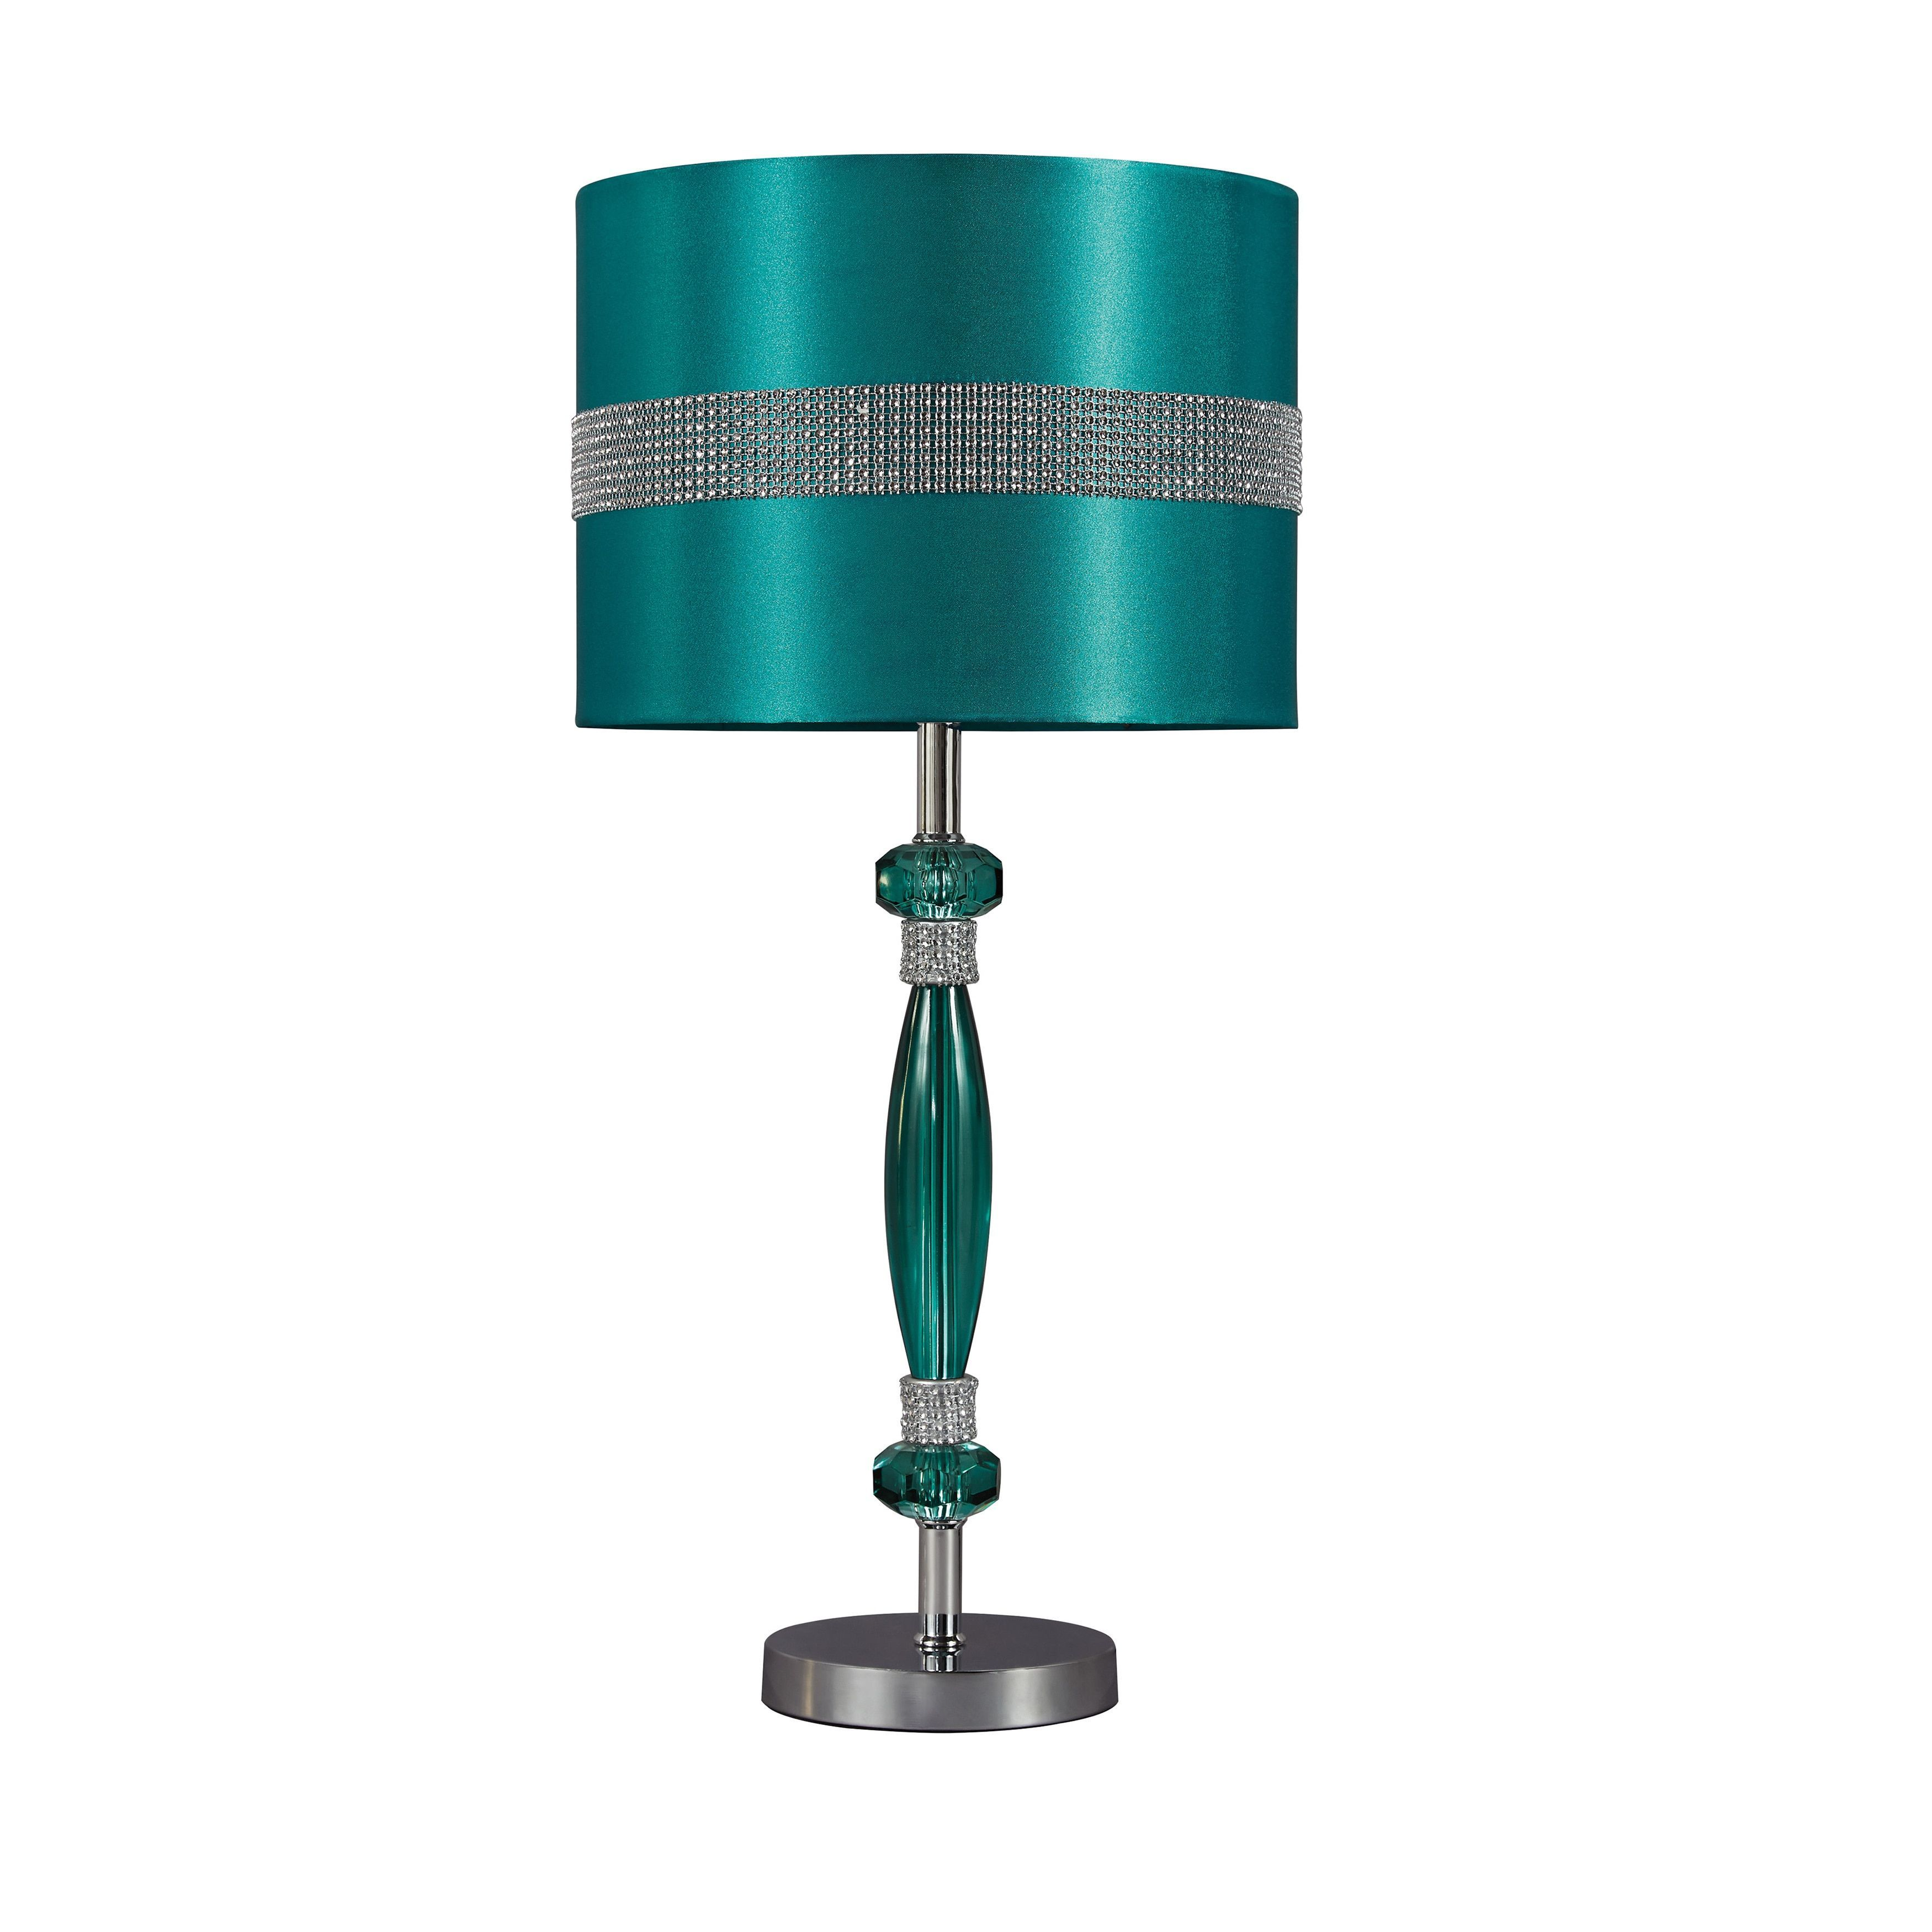 Pottery barn clift glass lamp ebay - Signature Design By Ashley 1 Light Teal Table Lamp